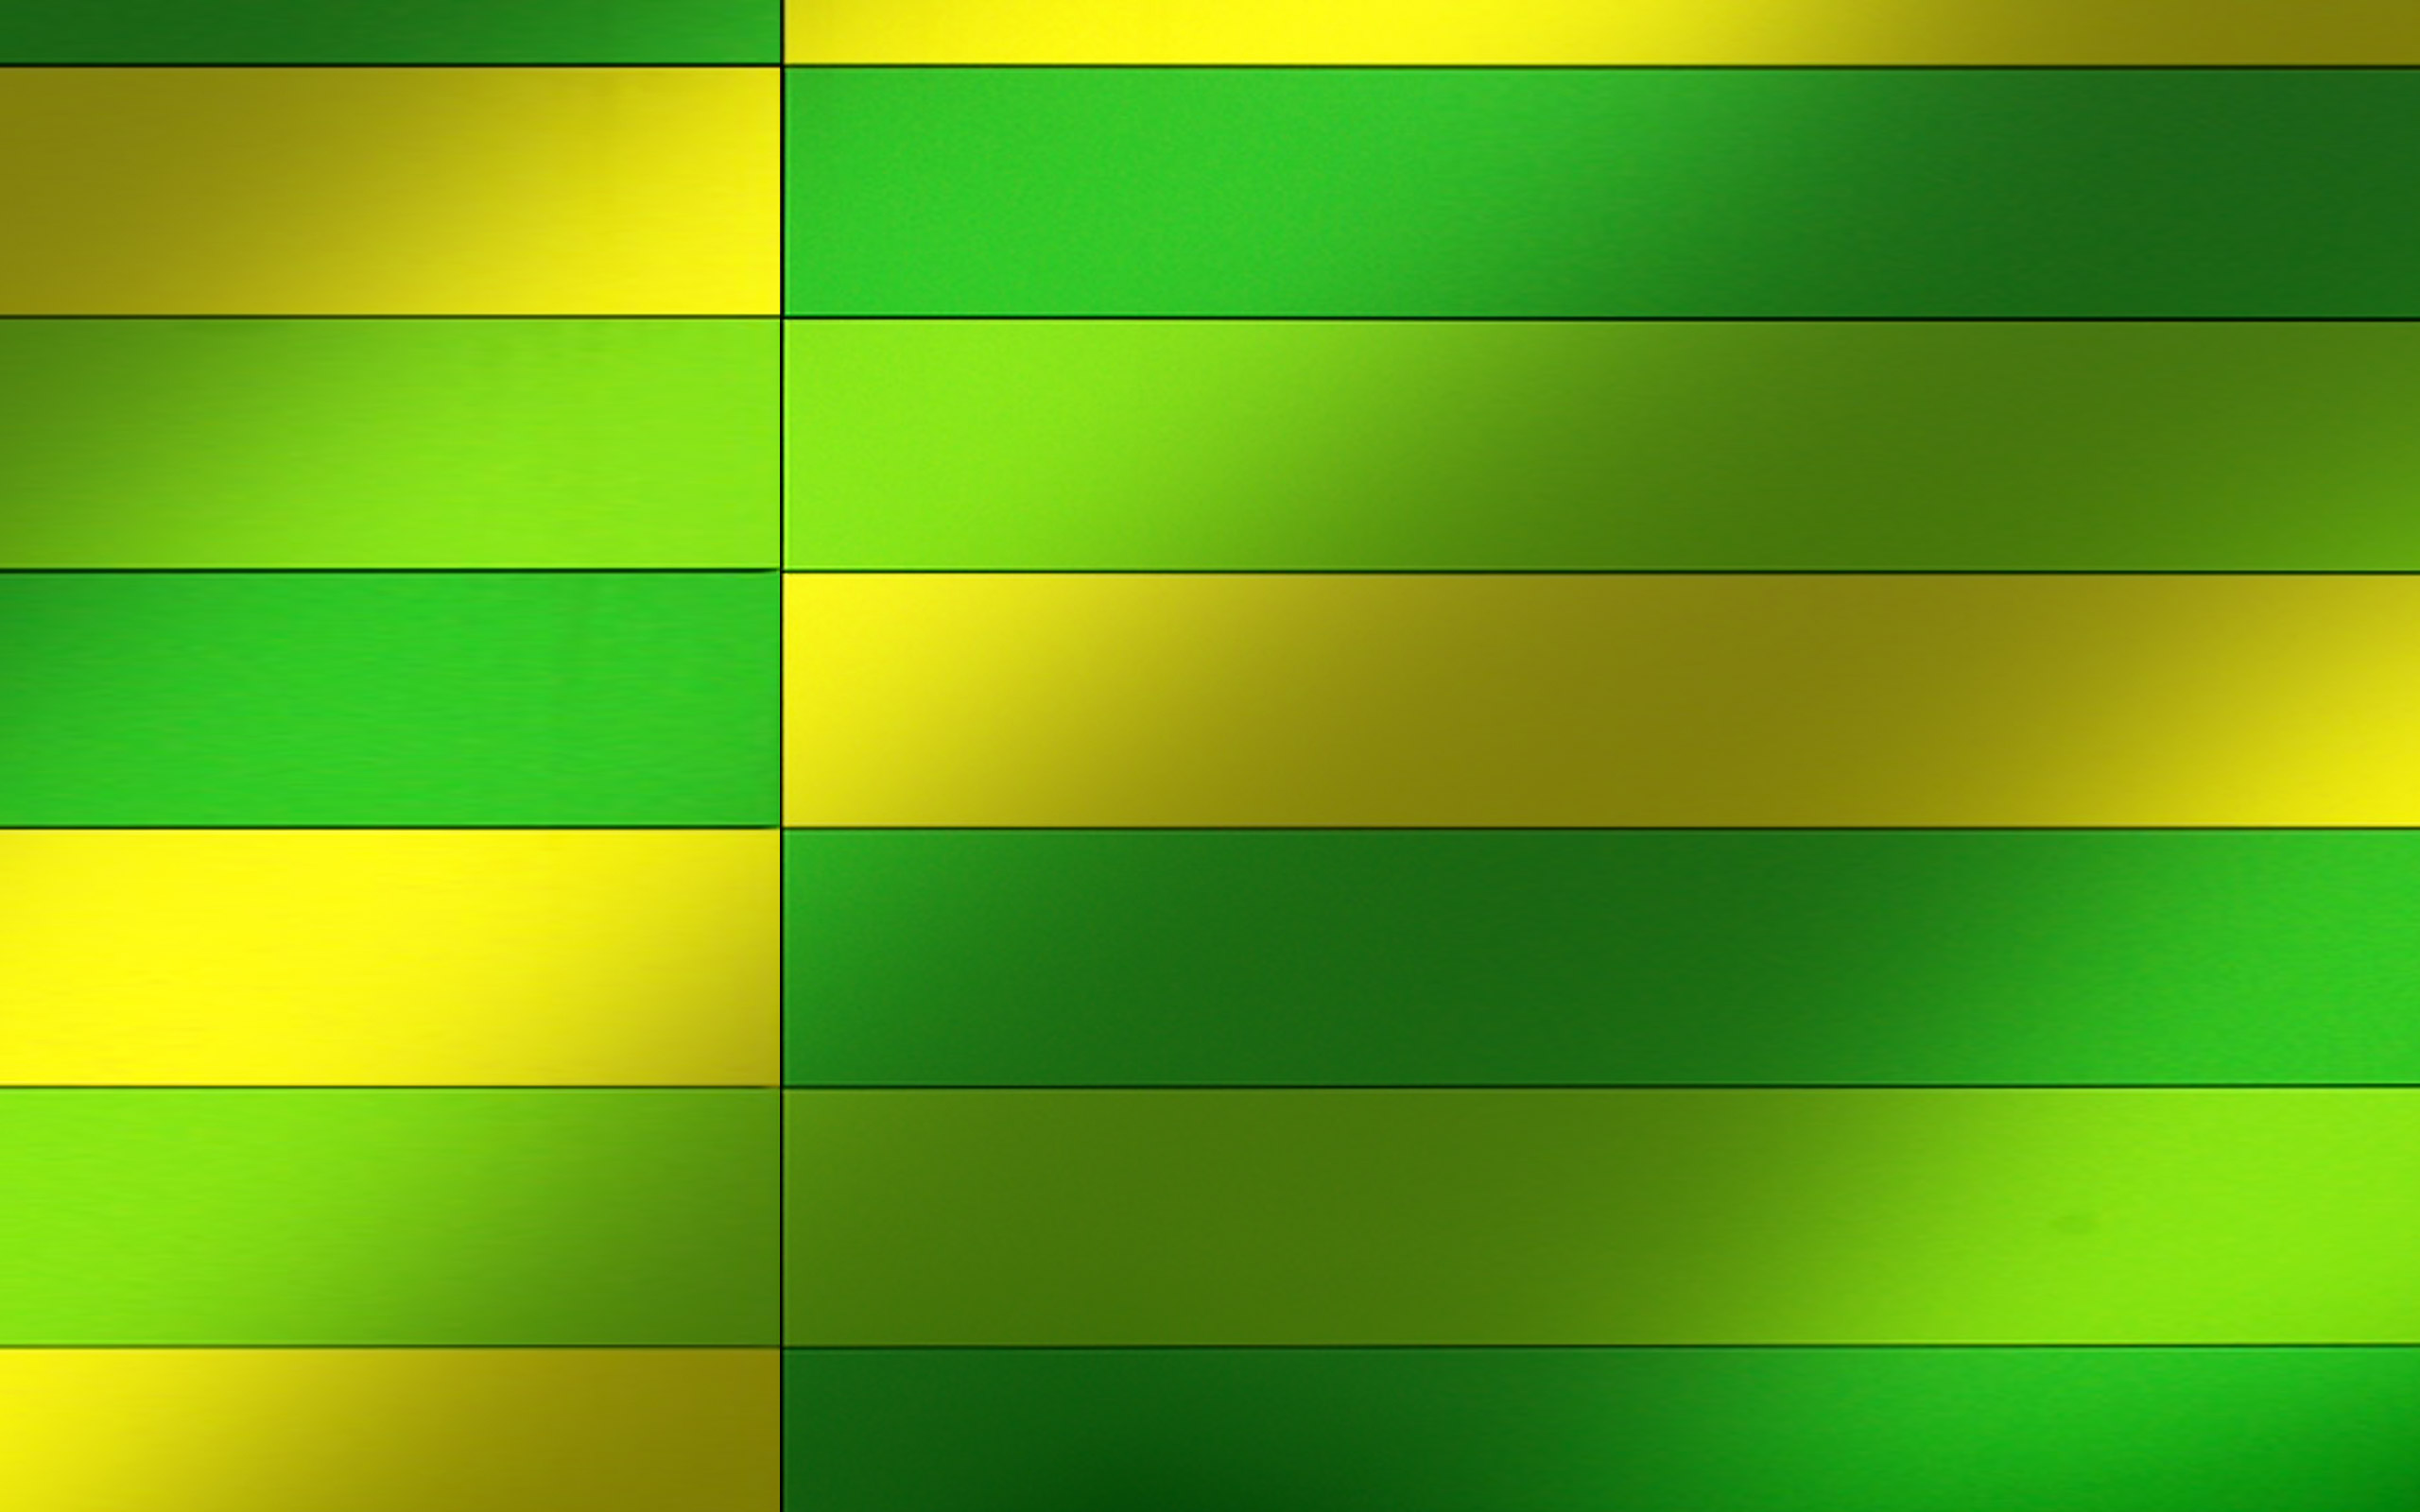 Green And Yellow Boxes 2560x1600